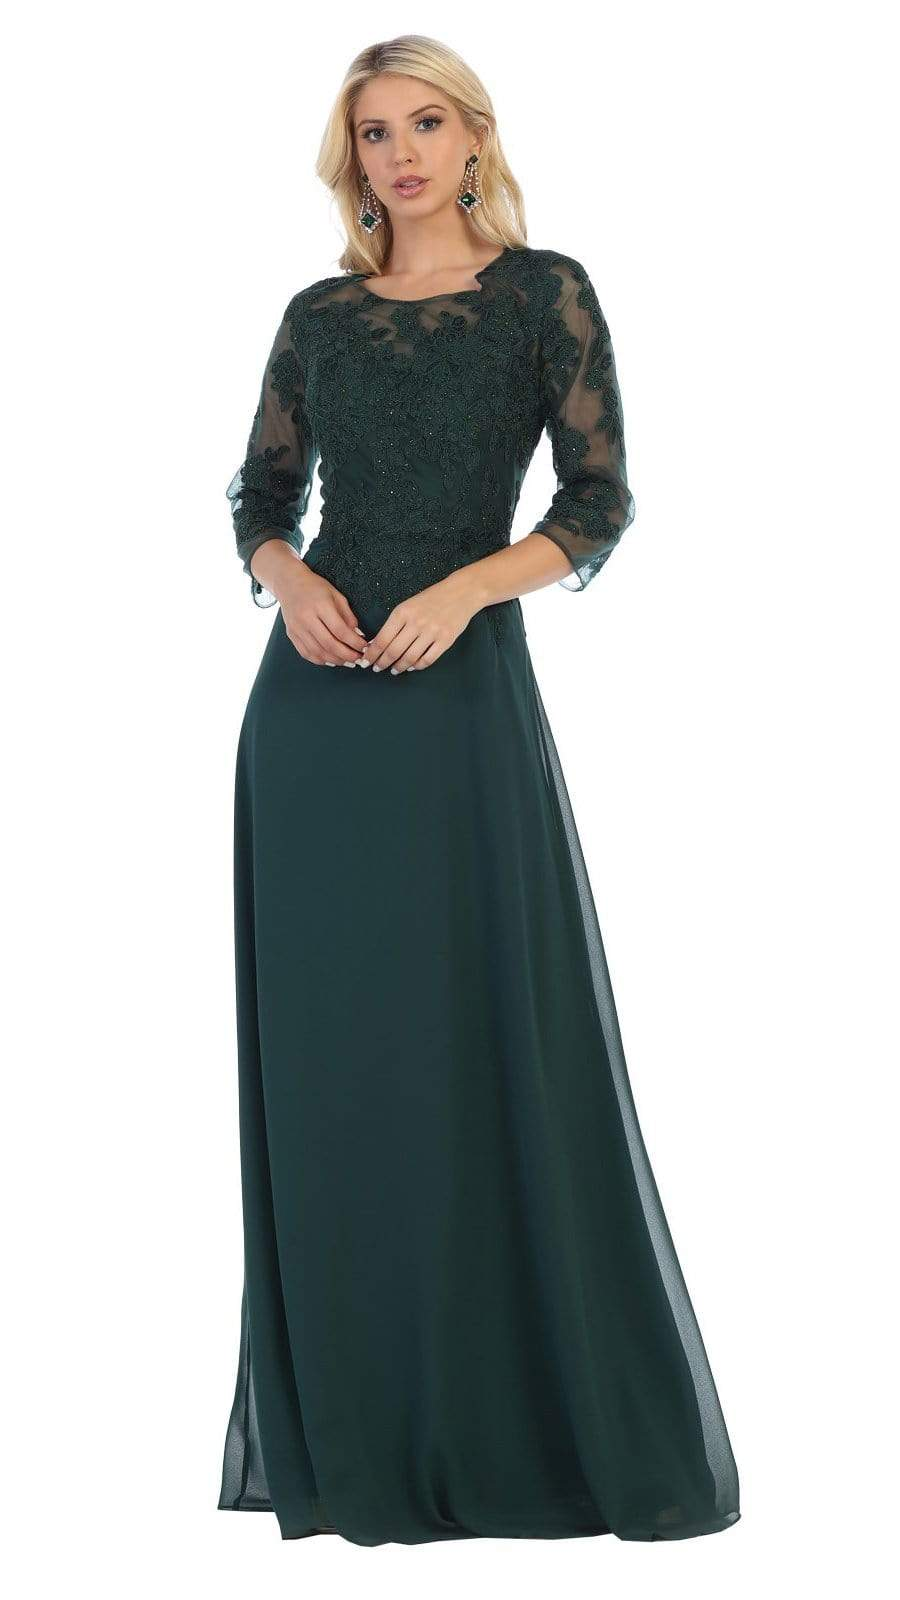 May Queen - MQ1637 Illusion Quarter Sleeve Appliqued Sheath Gown Special Occasion Dress M / Hunter Green